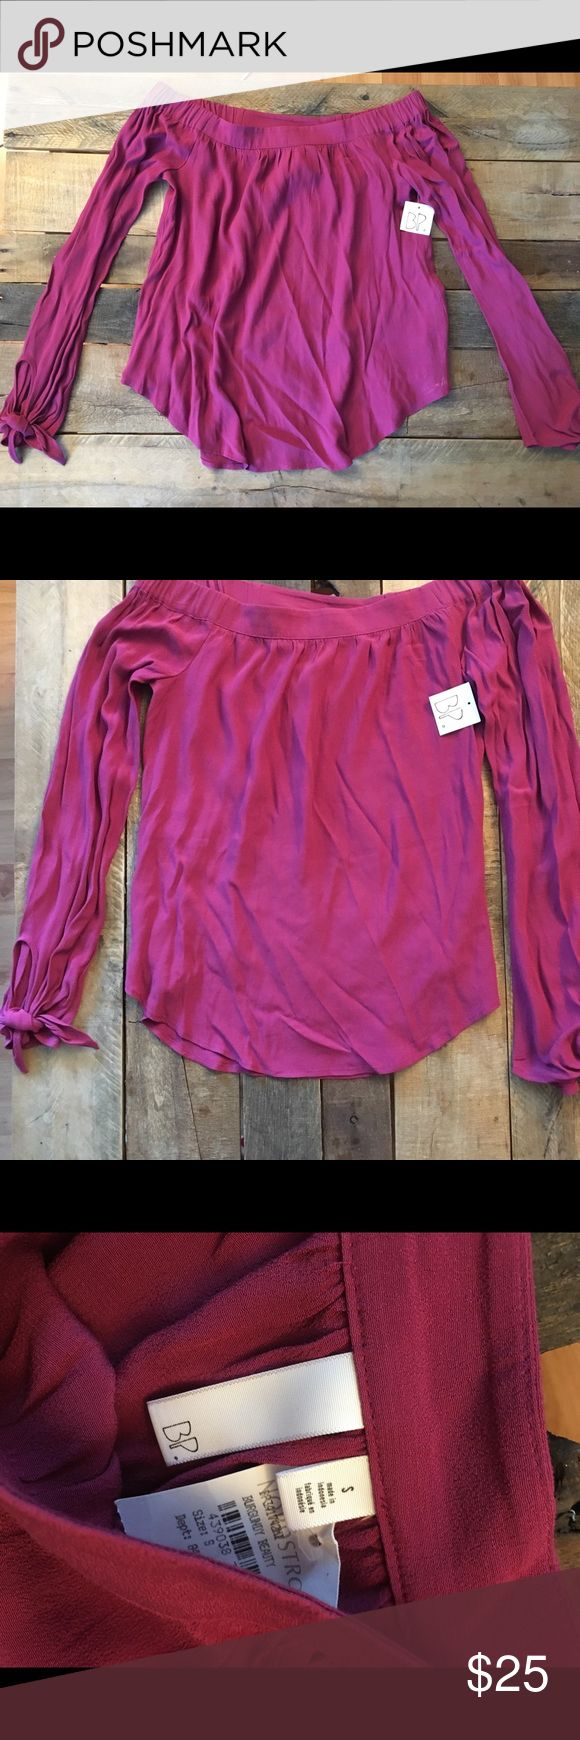 [BP.] Off the Shoulder Long Sleeve Top NWT. Purchased at Nordstrom rack just never ended up wearing it. Purple, size small. bp Tops Blouses